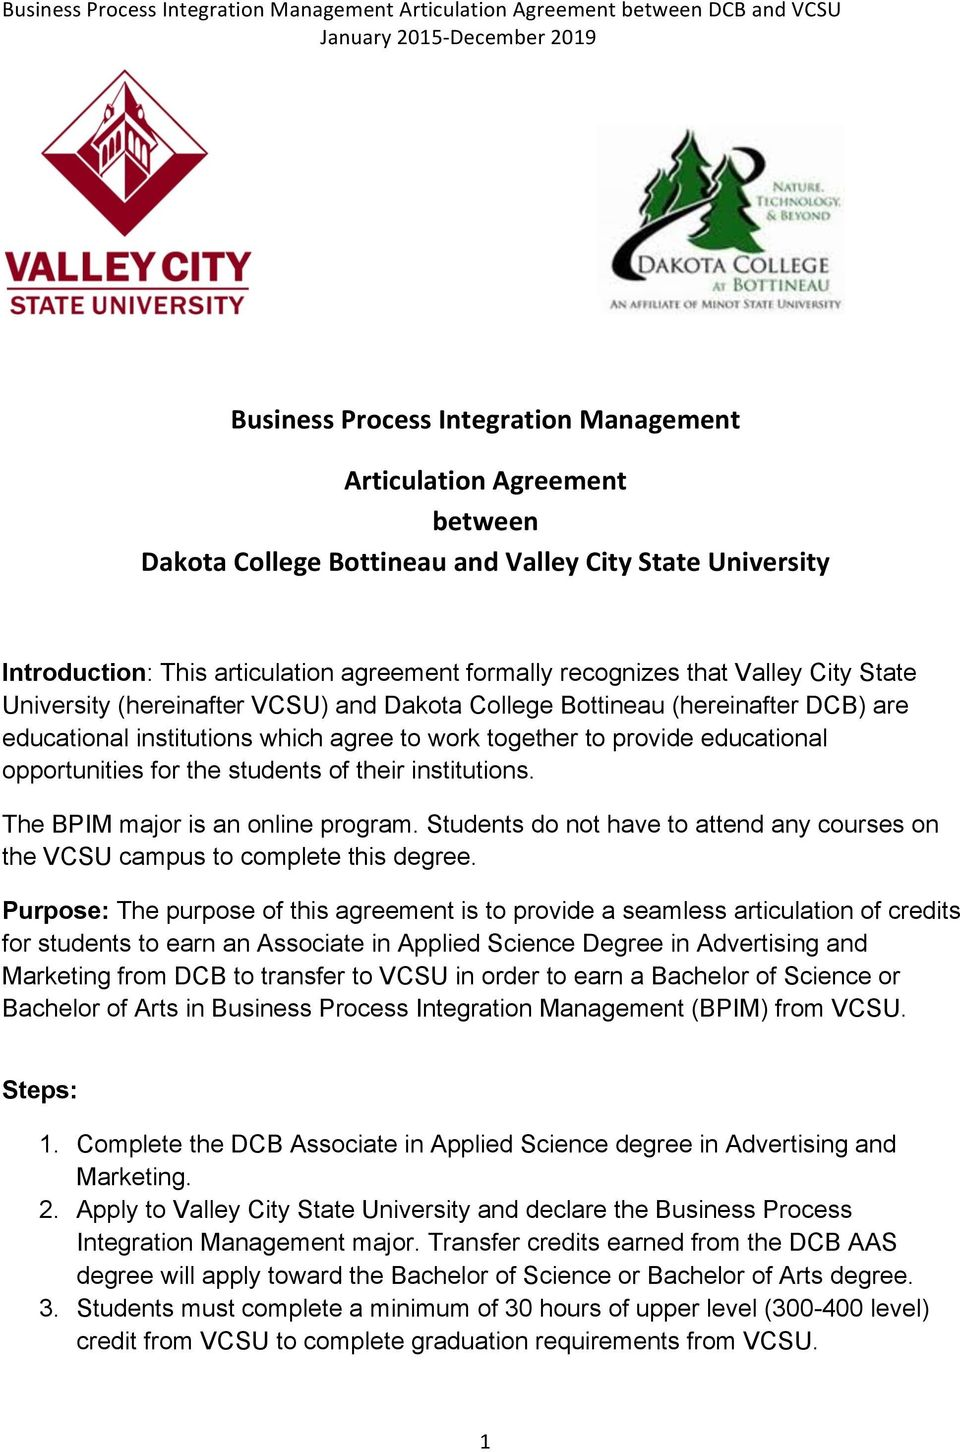 students of their institutions. The BPIM major is an online program. Students do not have to attend any courses on the VCSU campus to complete this degree.